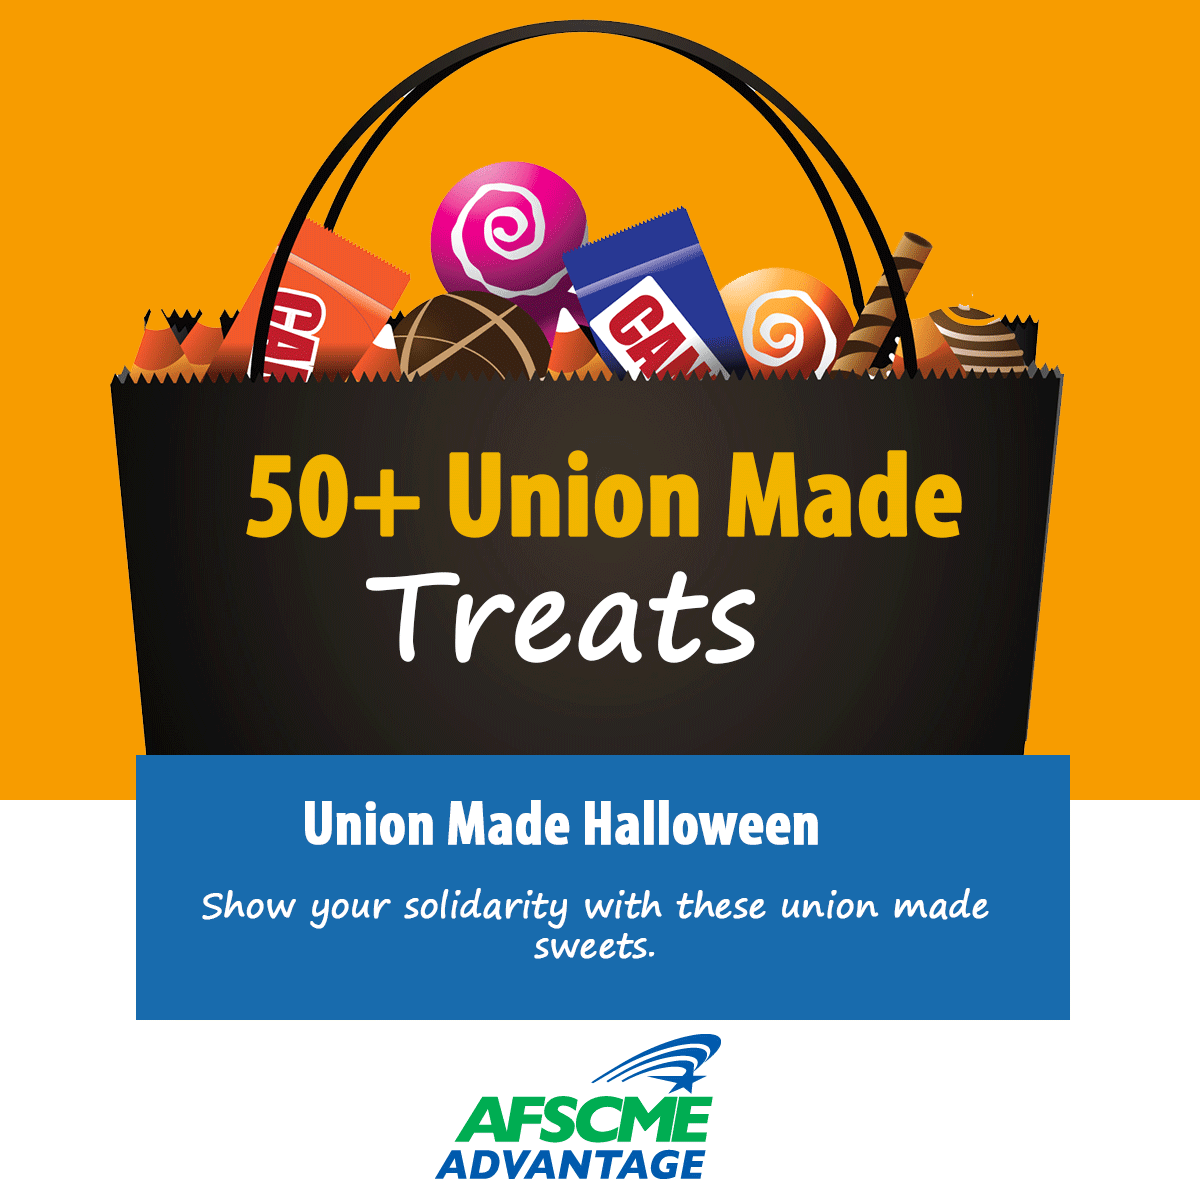 Union-made halloween candy in a bag